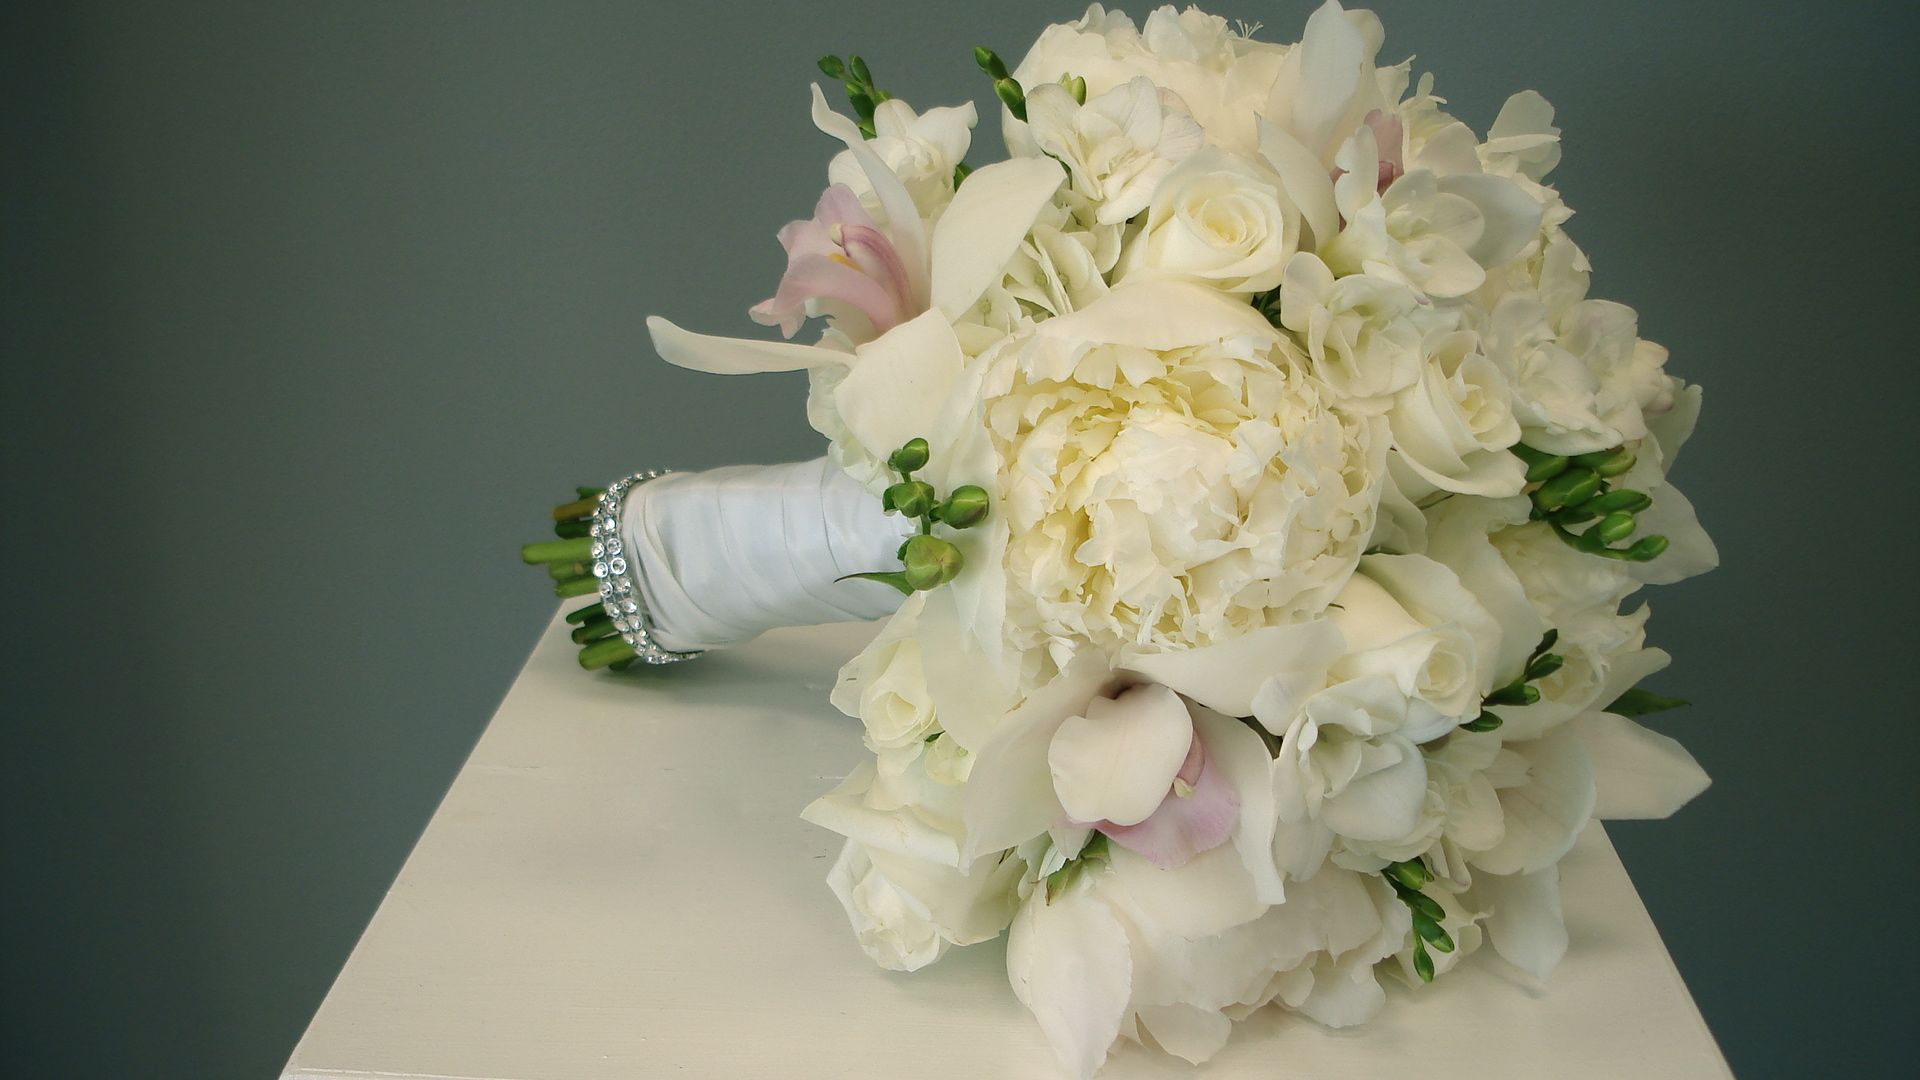 Spring wedding flower arrangements the seasons prettiest picks bridal bouquet izmirmasajfo